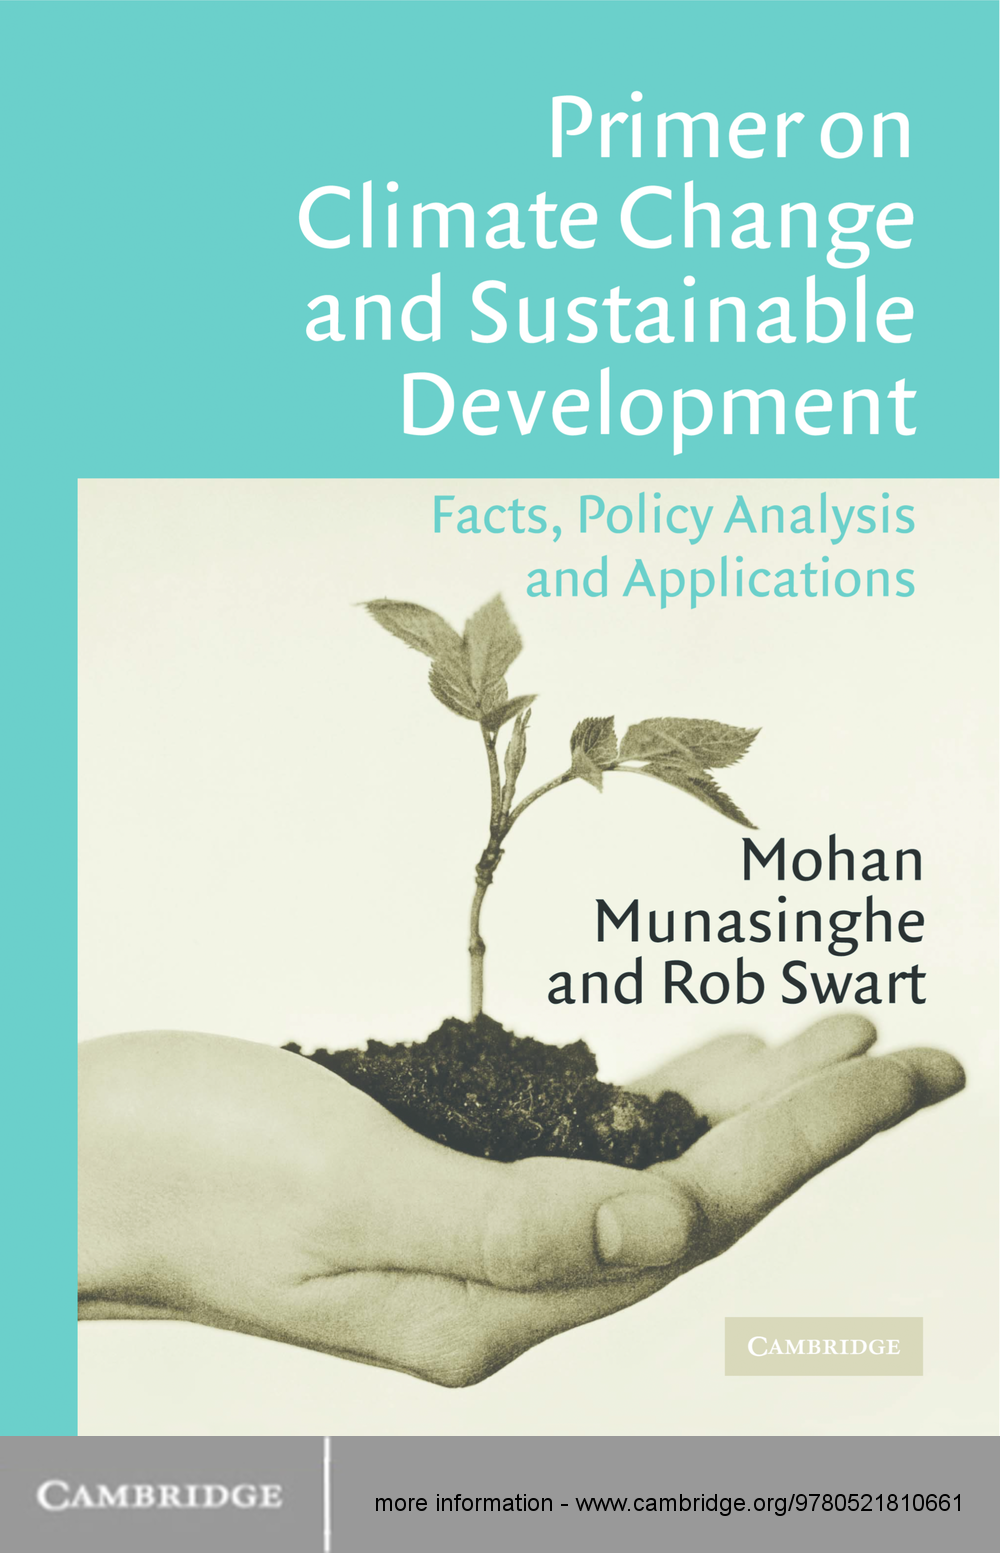 Primer on Climate Change and Sustainable Development Facts,  Policy Analysis,  and Applications